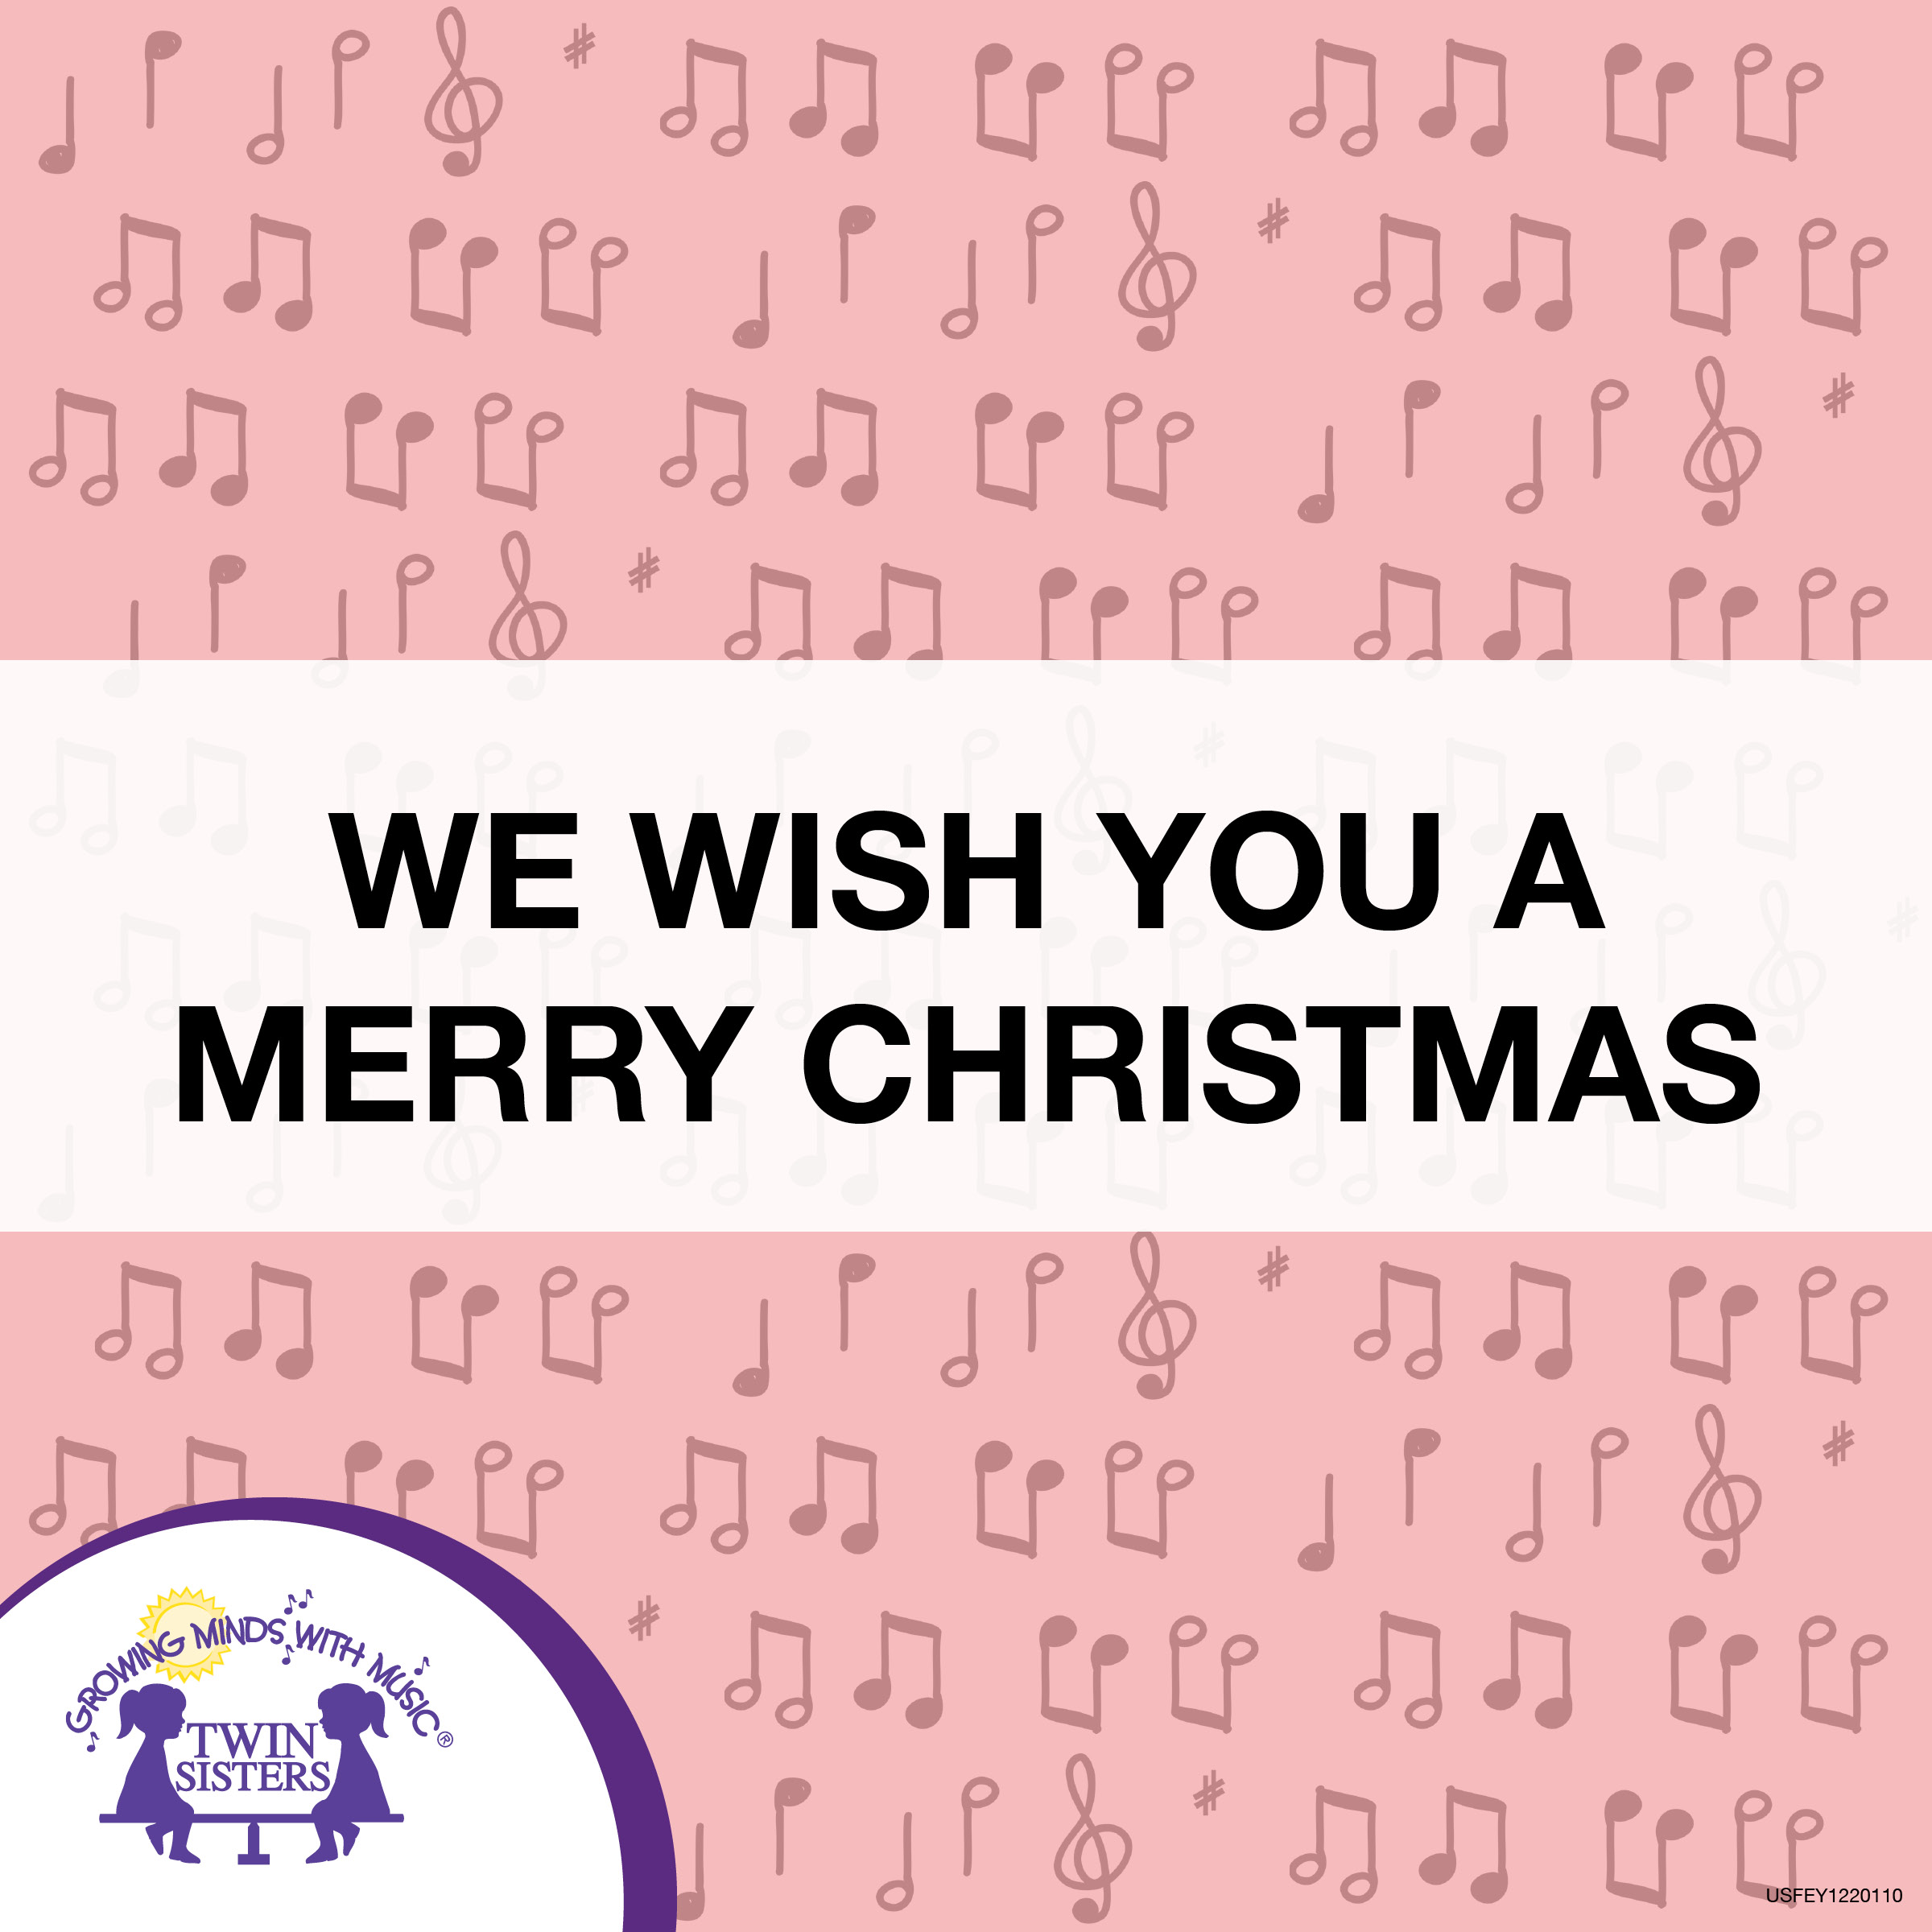 We Wish You A Merry Christmas - Twin Sisters